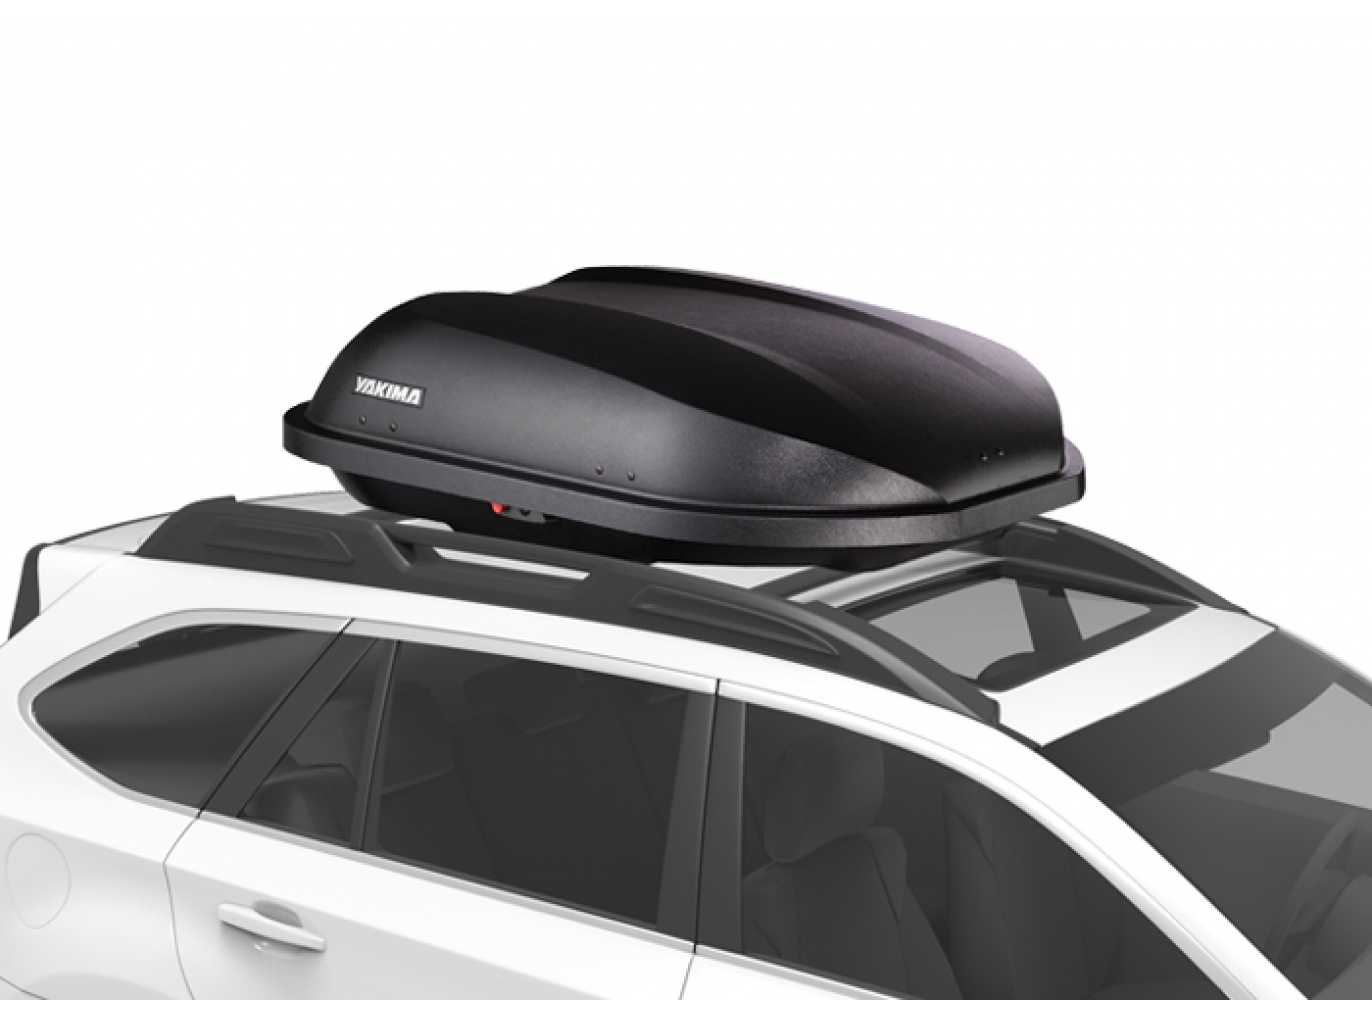 Thule large roof box hammer and screwdriver